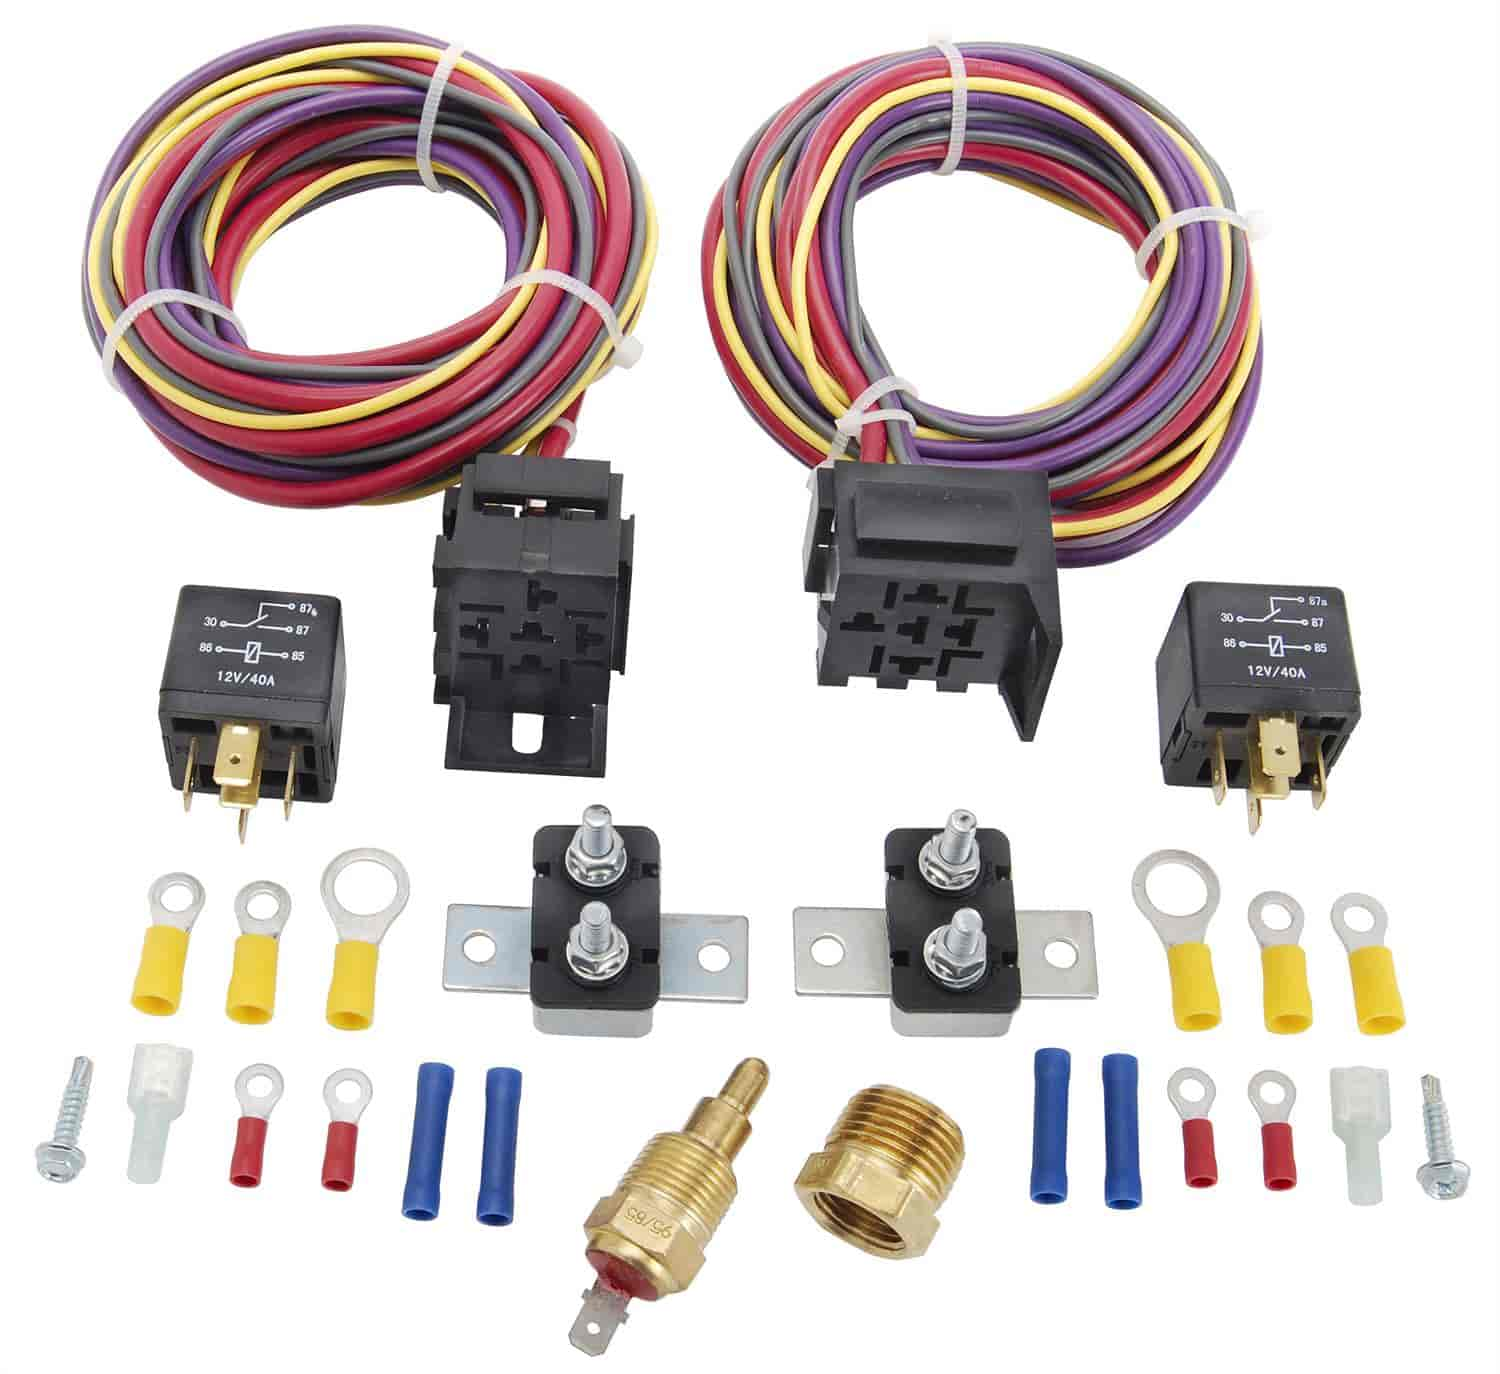 555 10571 jegs performance products 10571 dual fan wiring harness & relay jegs universal wiring harness at reclaimingppi.co